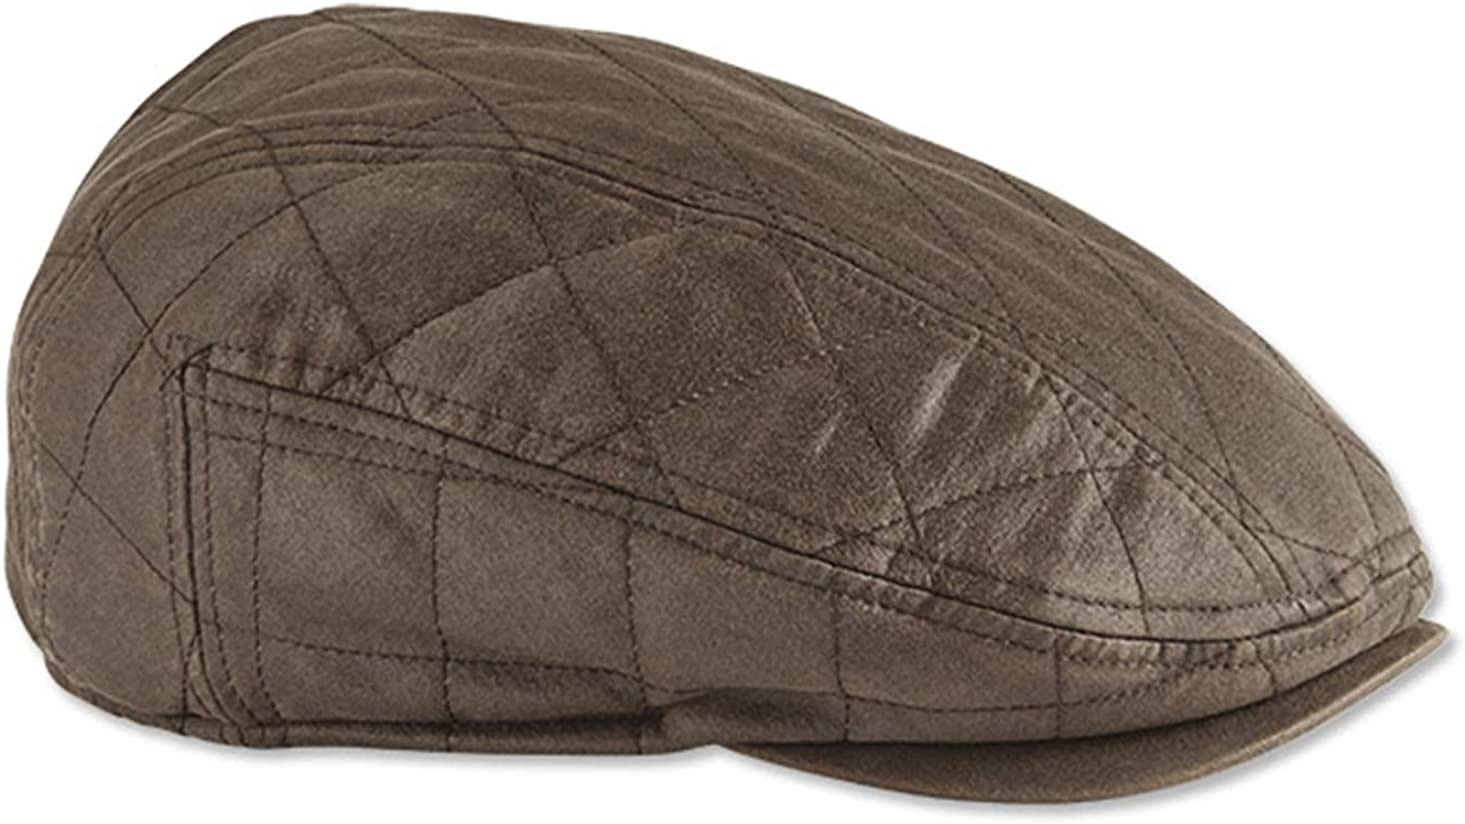 Orvis Early Rise Wax Cotton Ball Cap